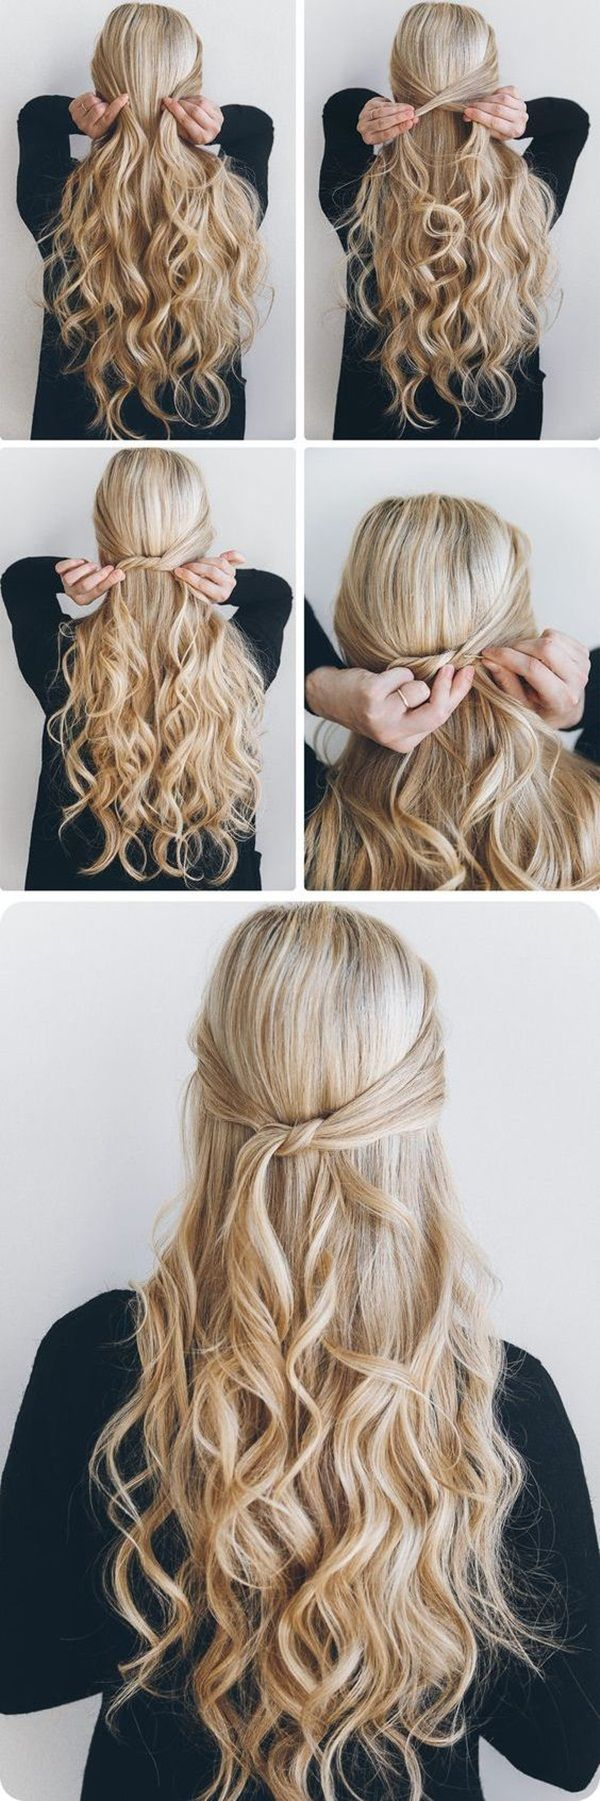 40 easy hairstyles for schools to try in 2016 | hair dun